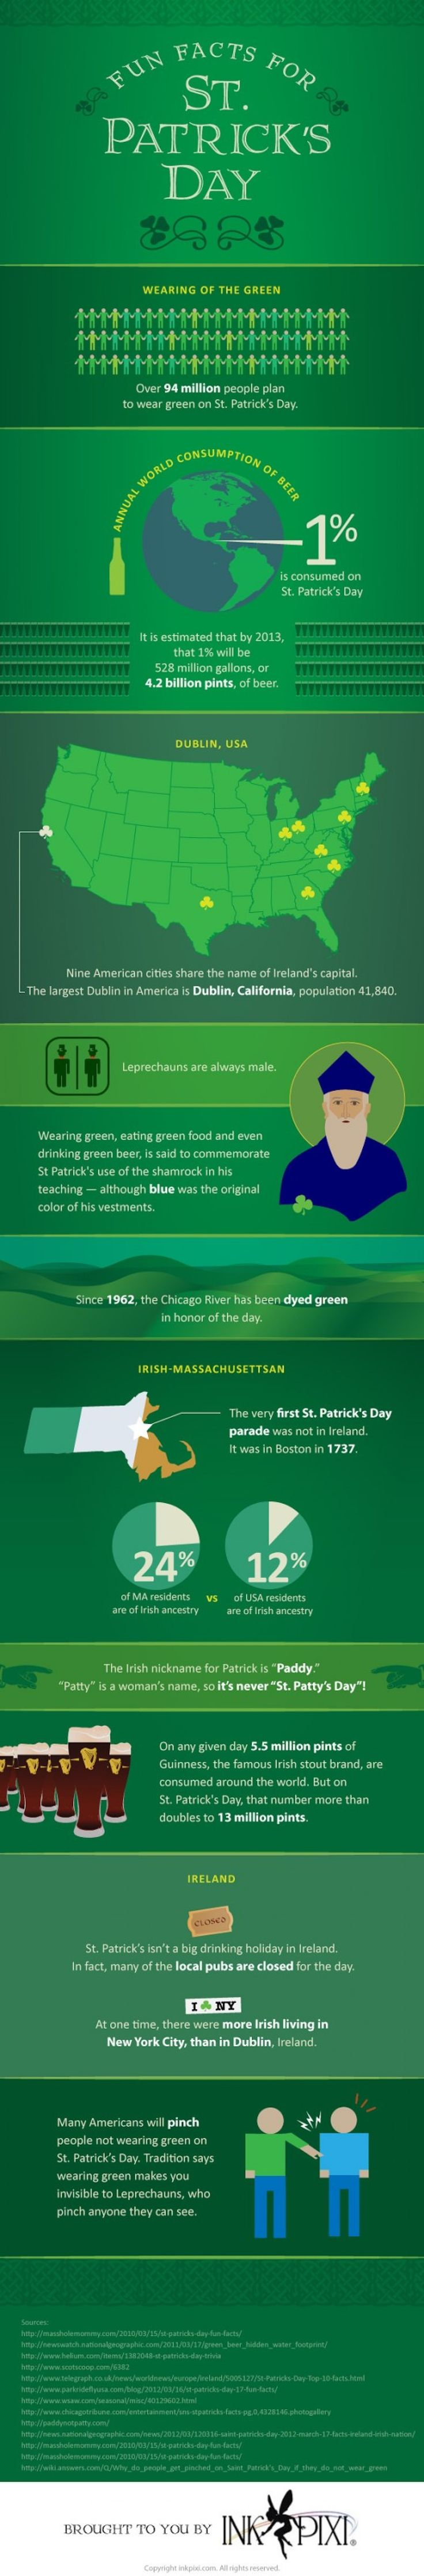 fun-facts-for-st-patricks-day_5127a229bc3a4_w1500